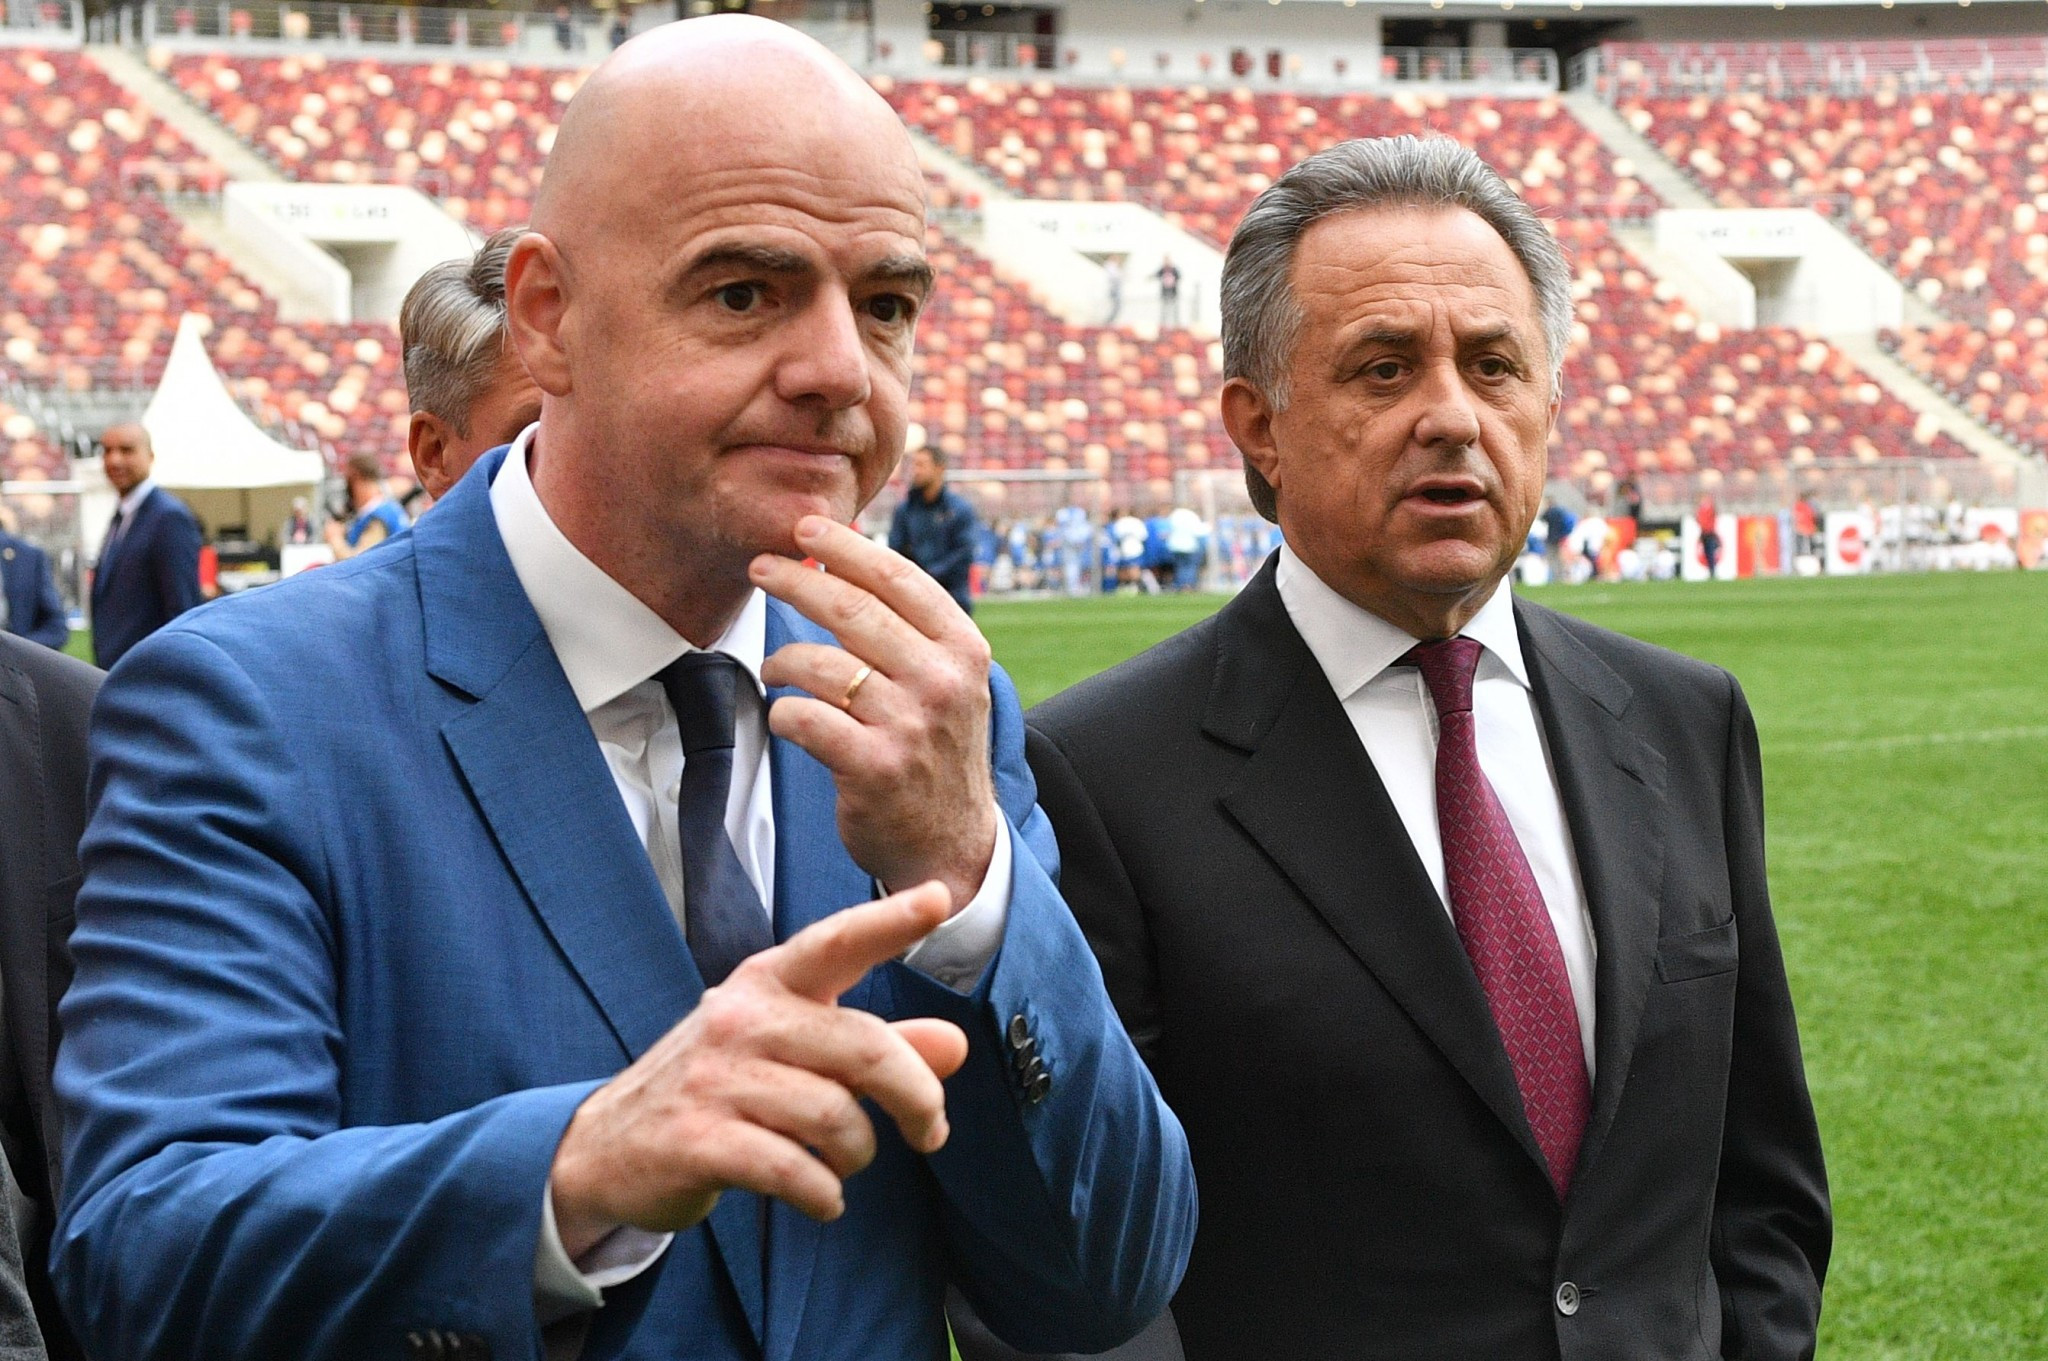 It has been alleged FIFA President Gianni Infantino, left, attempted to influence the decision to block Vitaly Mutko, right, from the organisation's Council ©Getty Images